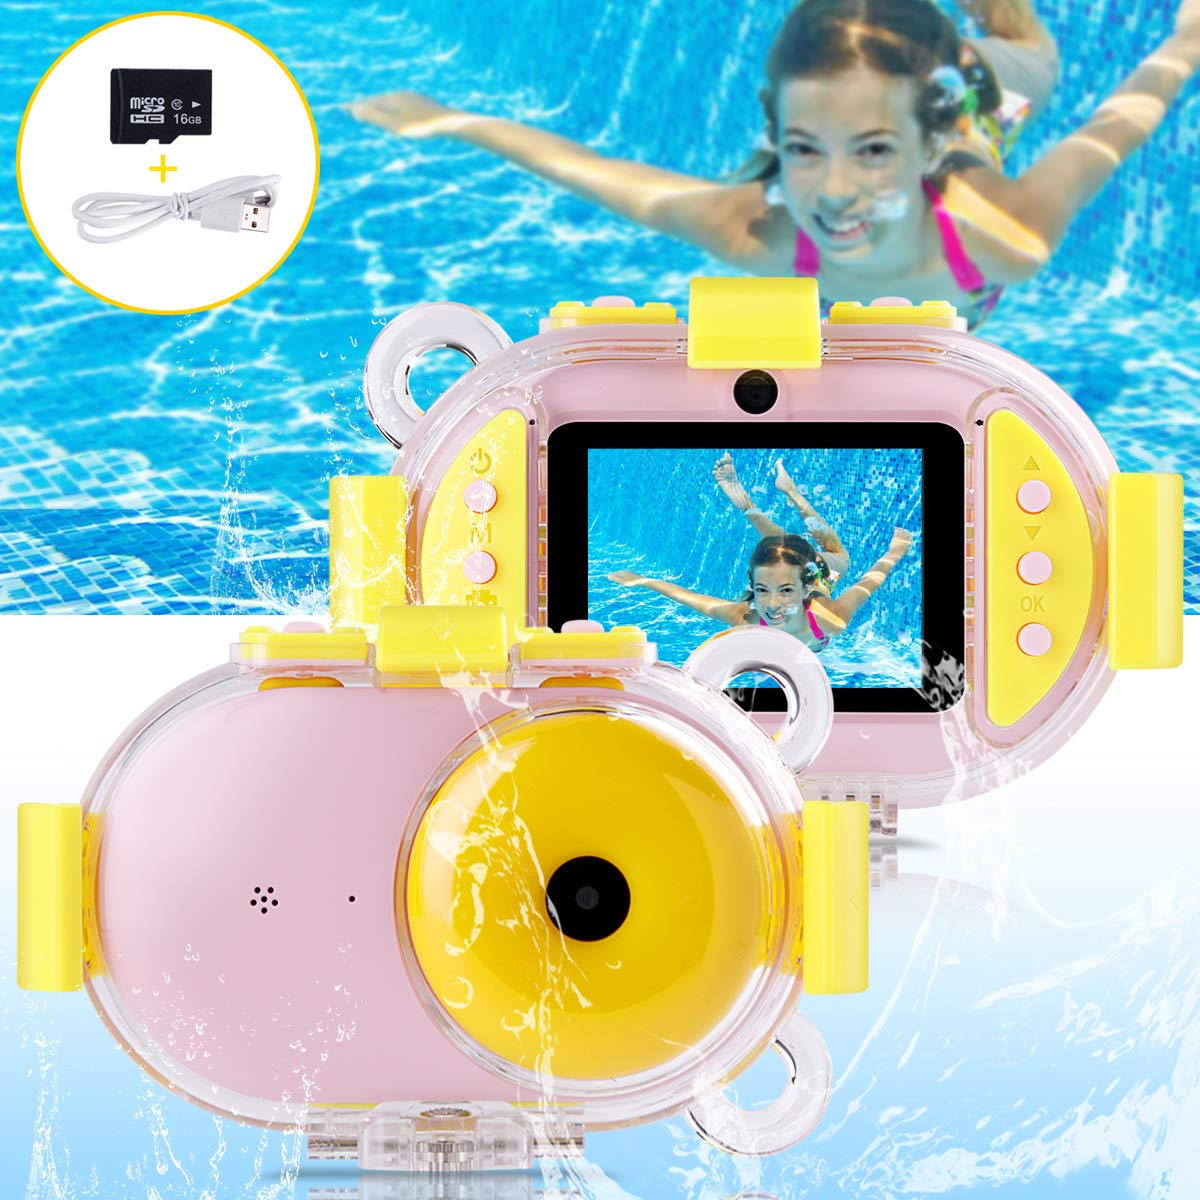 Kids Camera, OPOLEMIN Kids Waterproof Camera Kids Video Camera with Sound Playback Underwater Digital Camera Camcorderfor Kids with 16G Memory Card for Children's Day Birthday Trip Beach Swimming